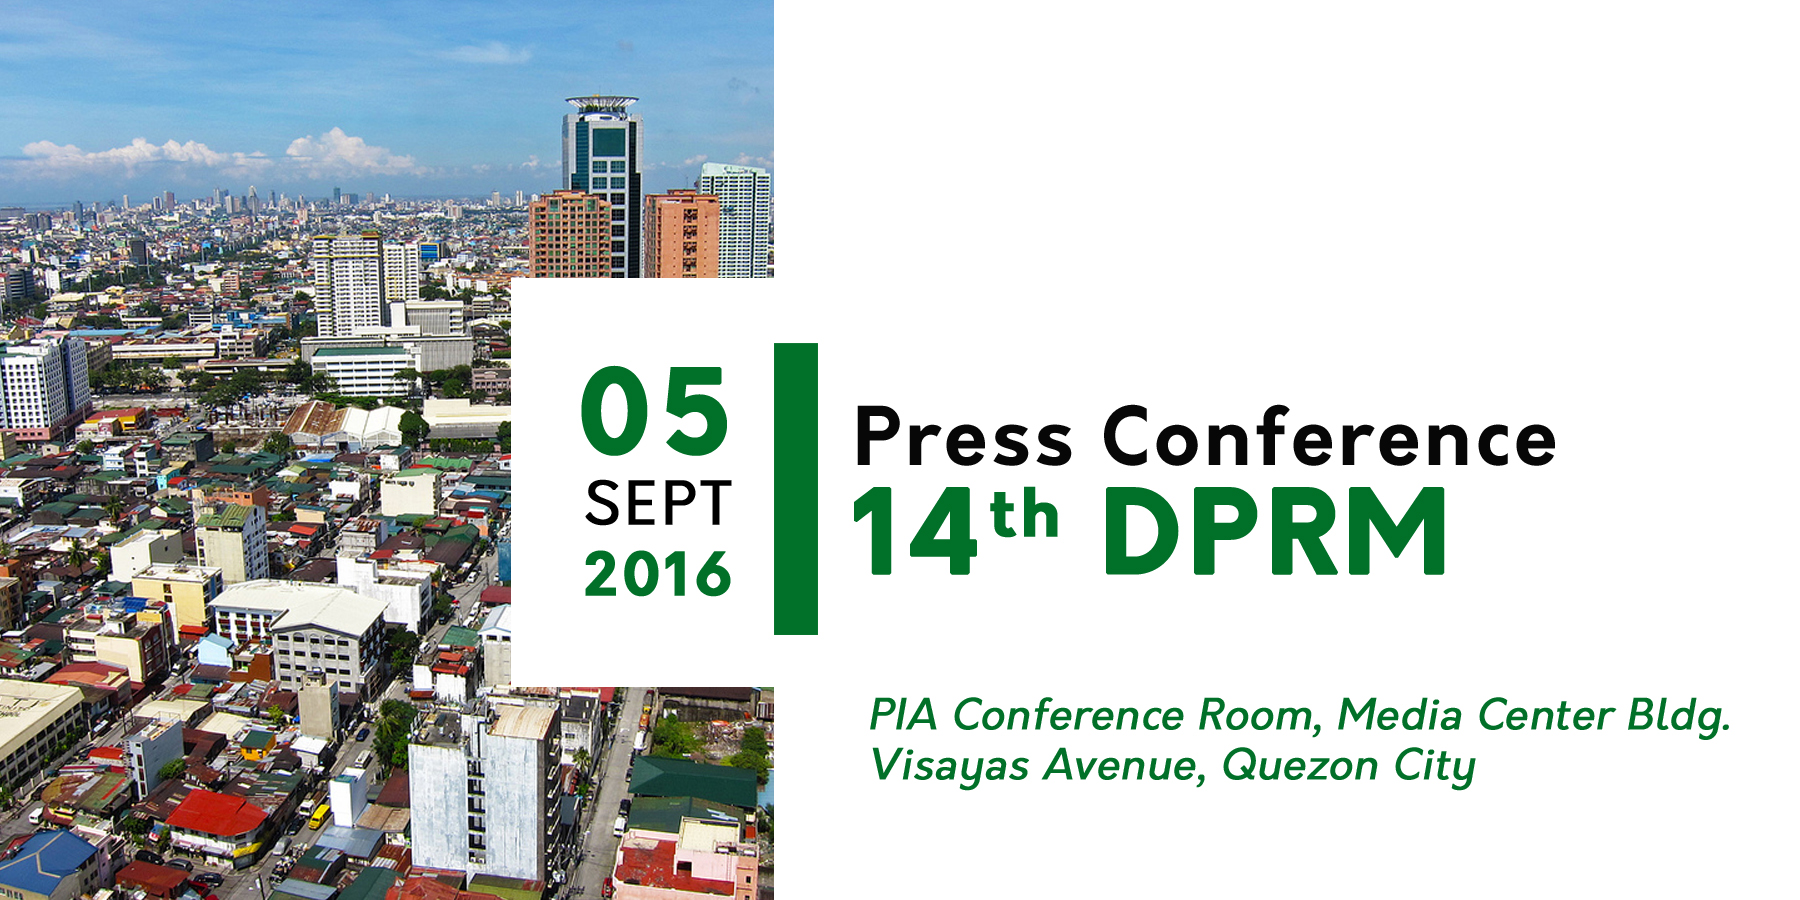 PIDS, PIA to hold press conference to herald start of DPRM 2016